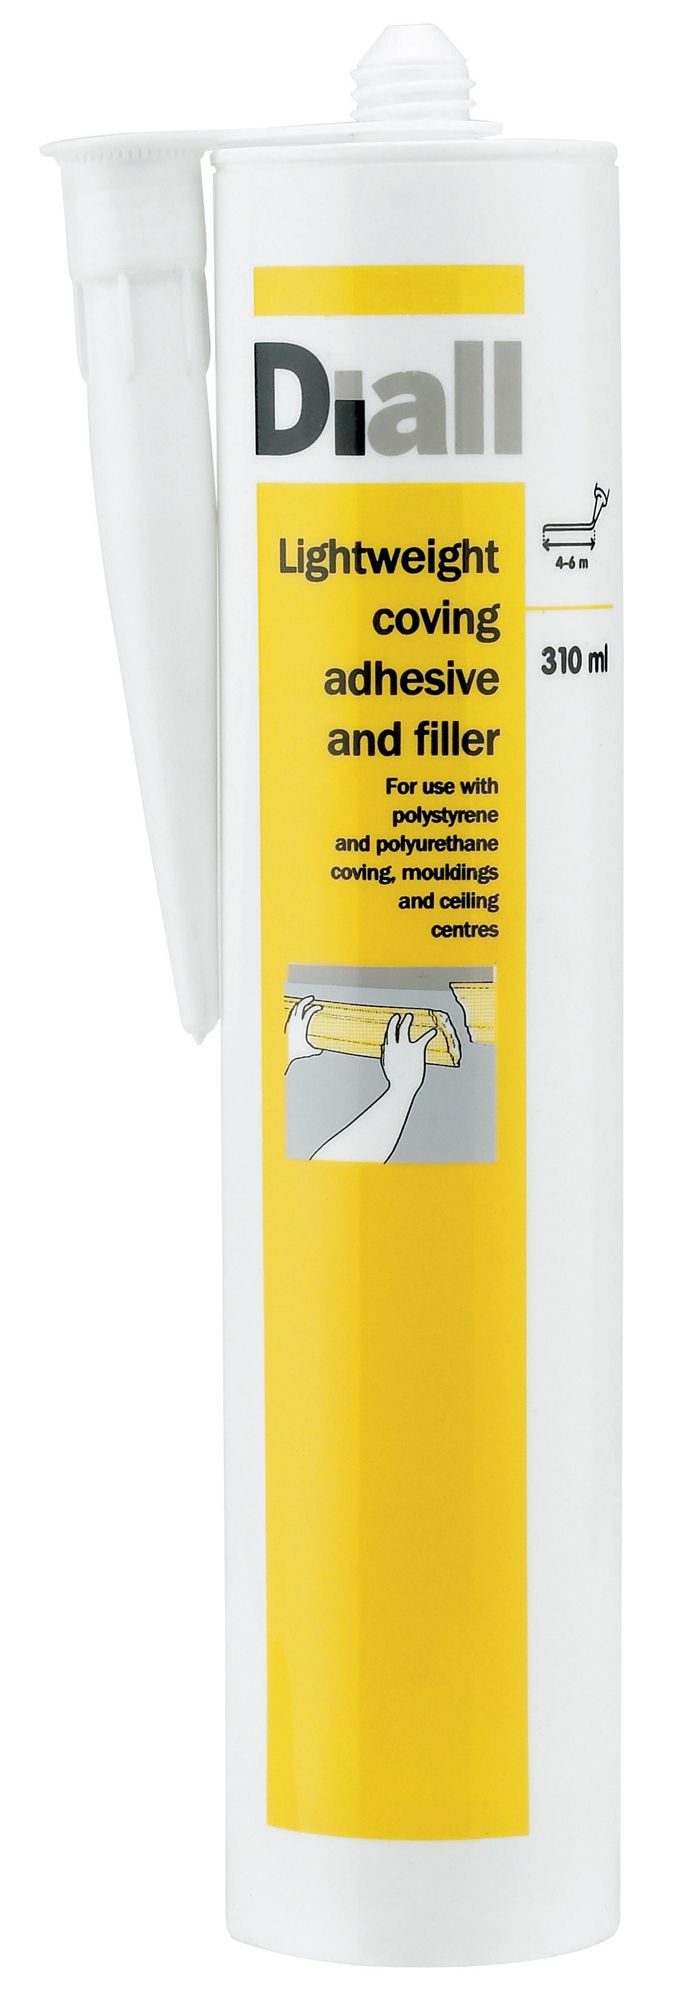 Ml >> Diall Coving Adhesive & Filler, 310ml | Departments | TradePoint